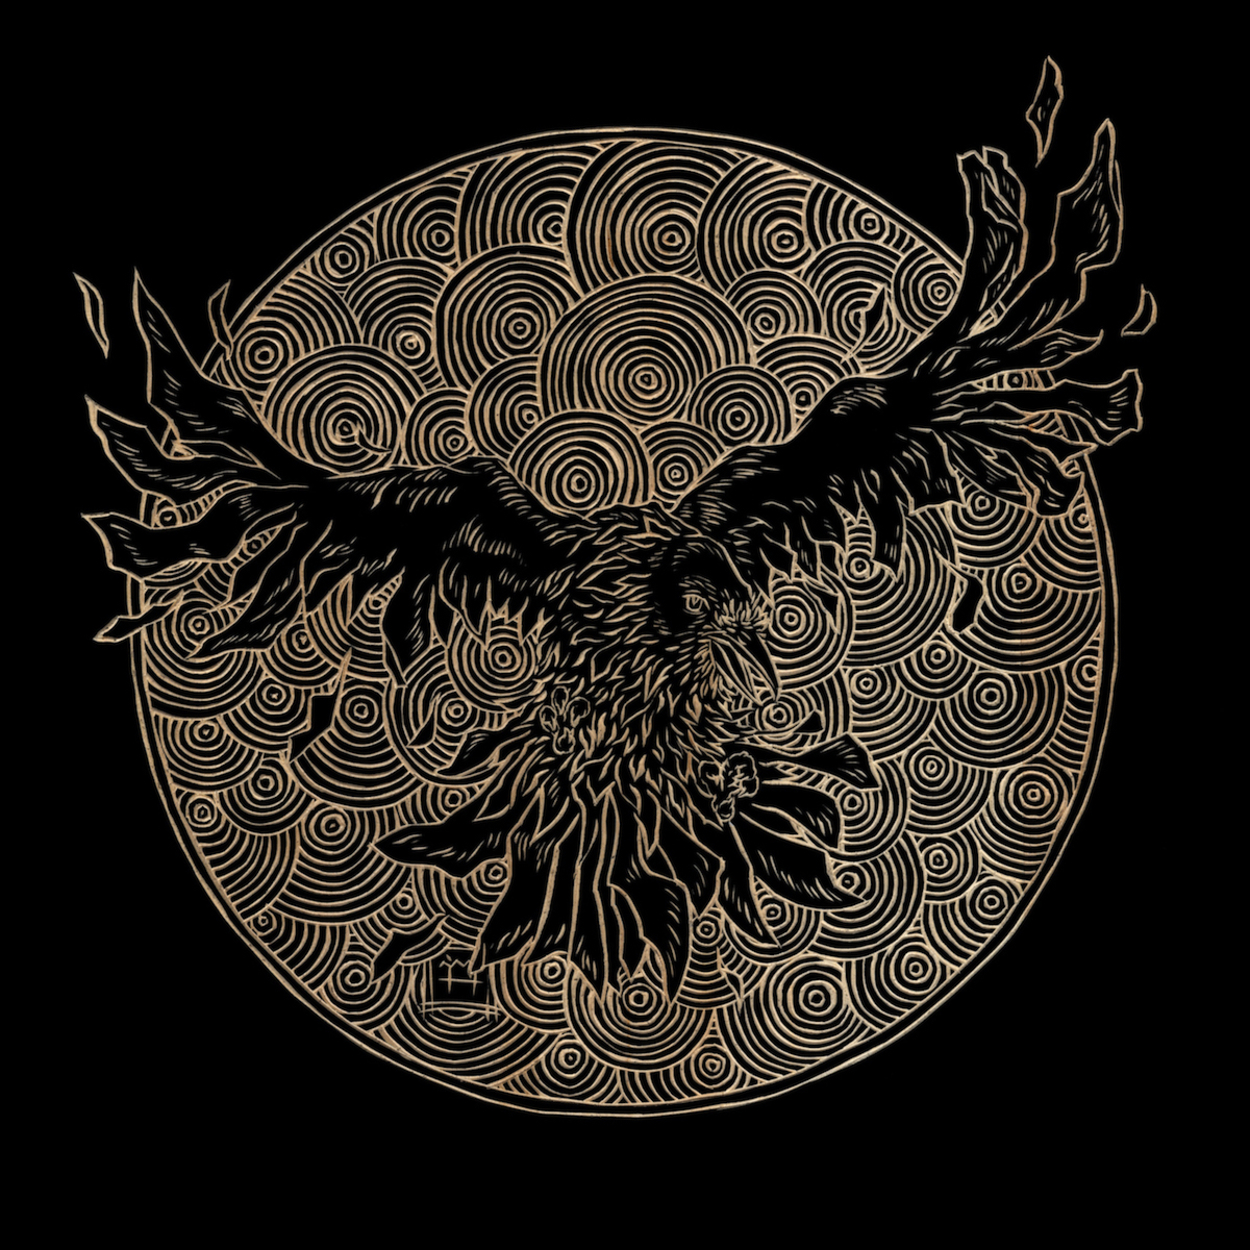 Raven Flight Artwork by M'fanwy Dean